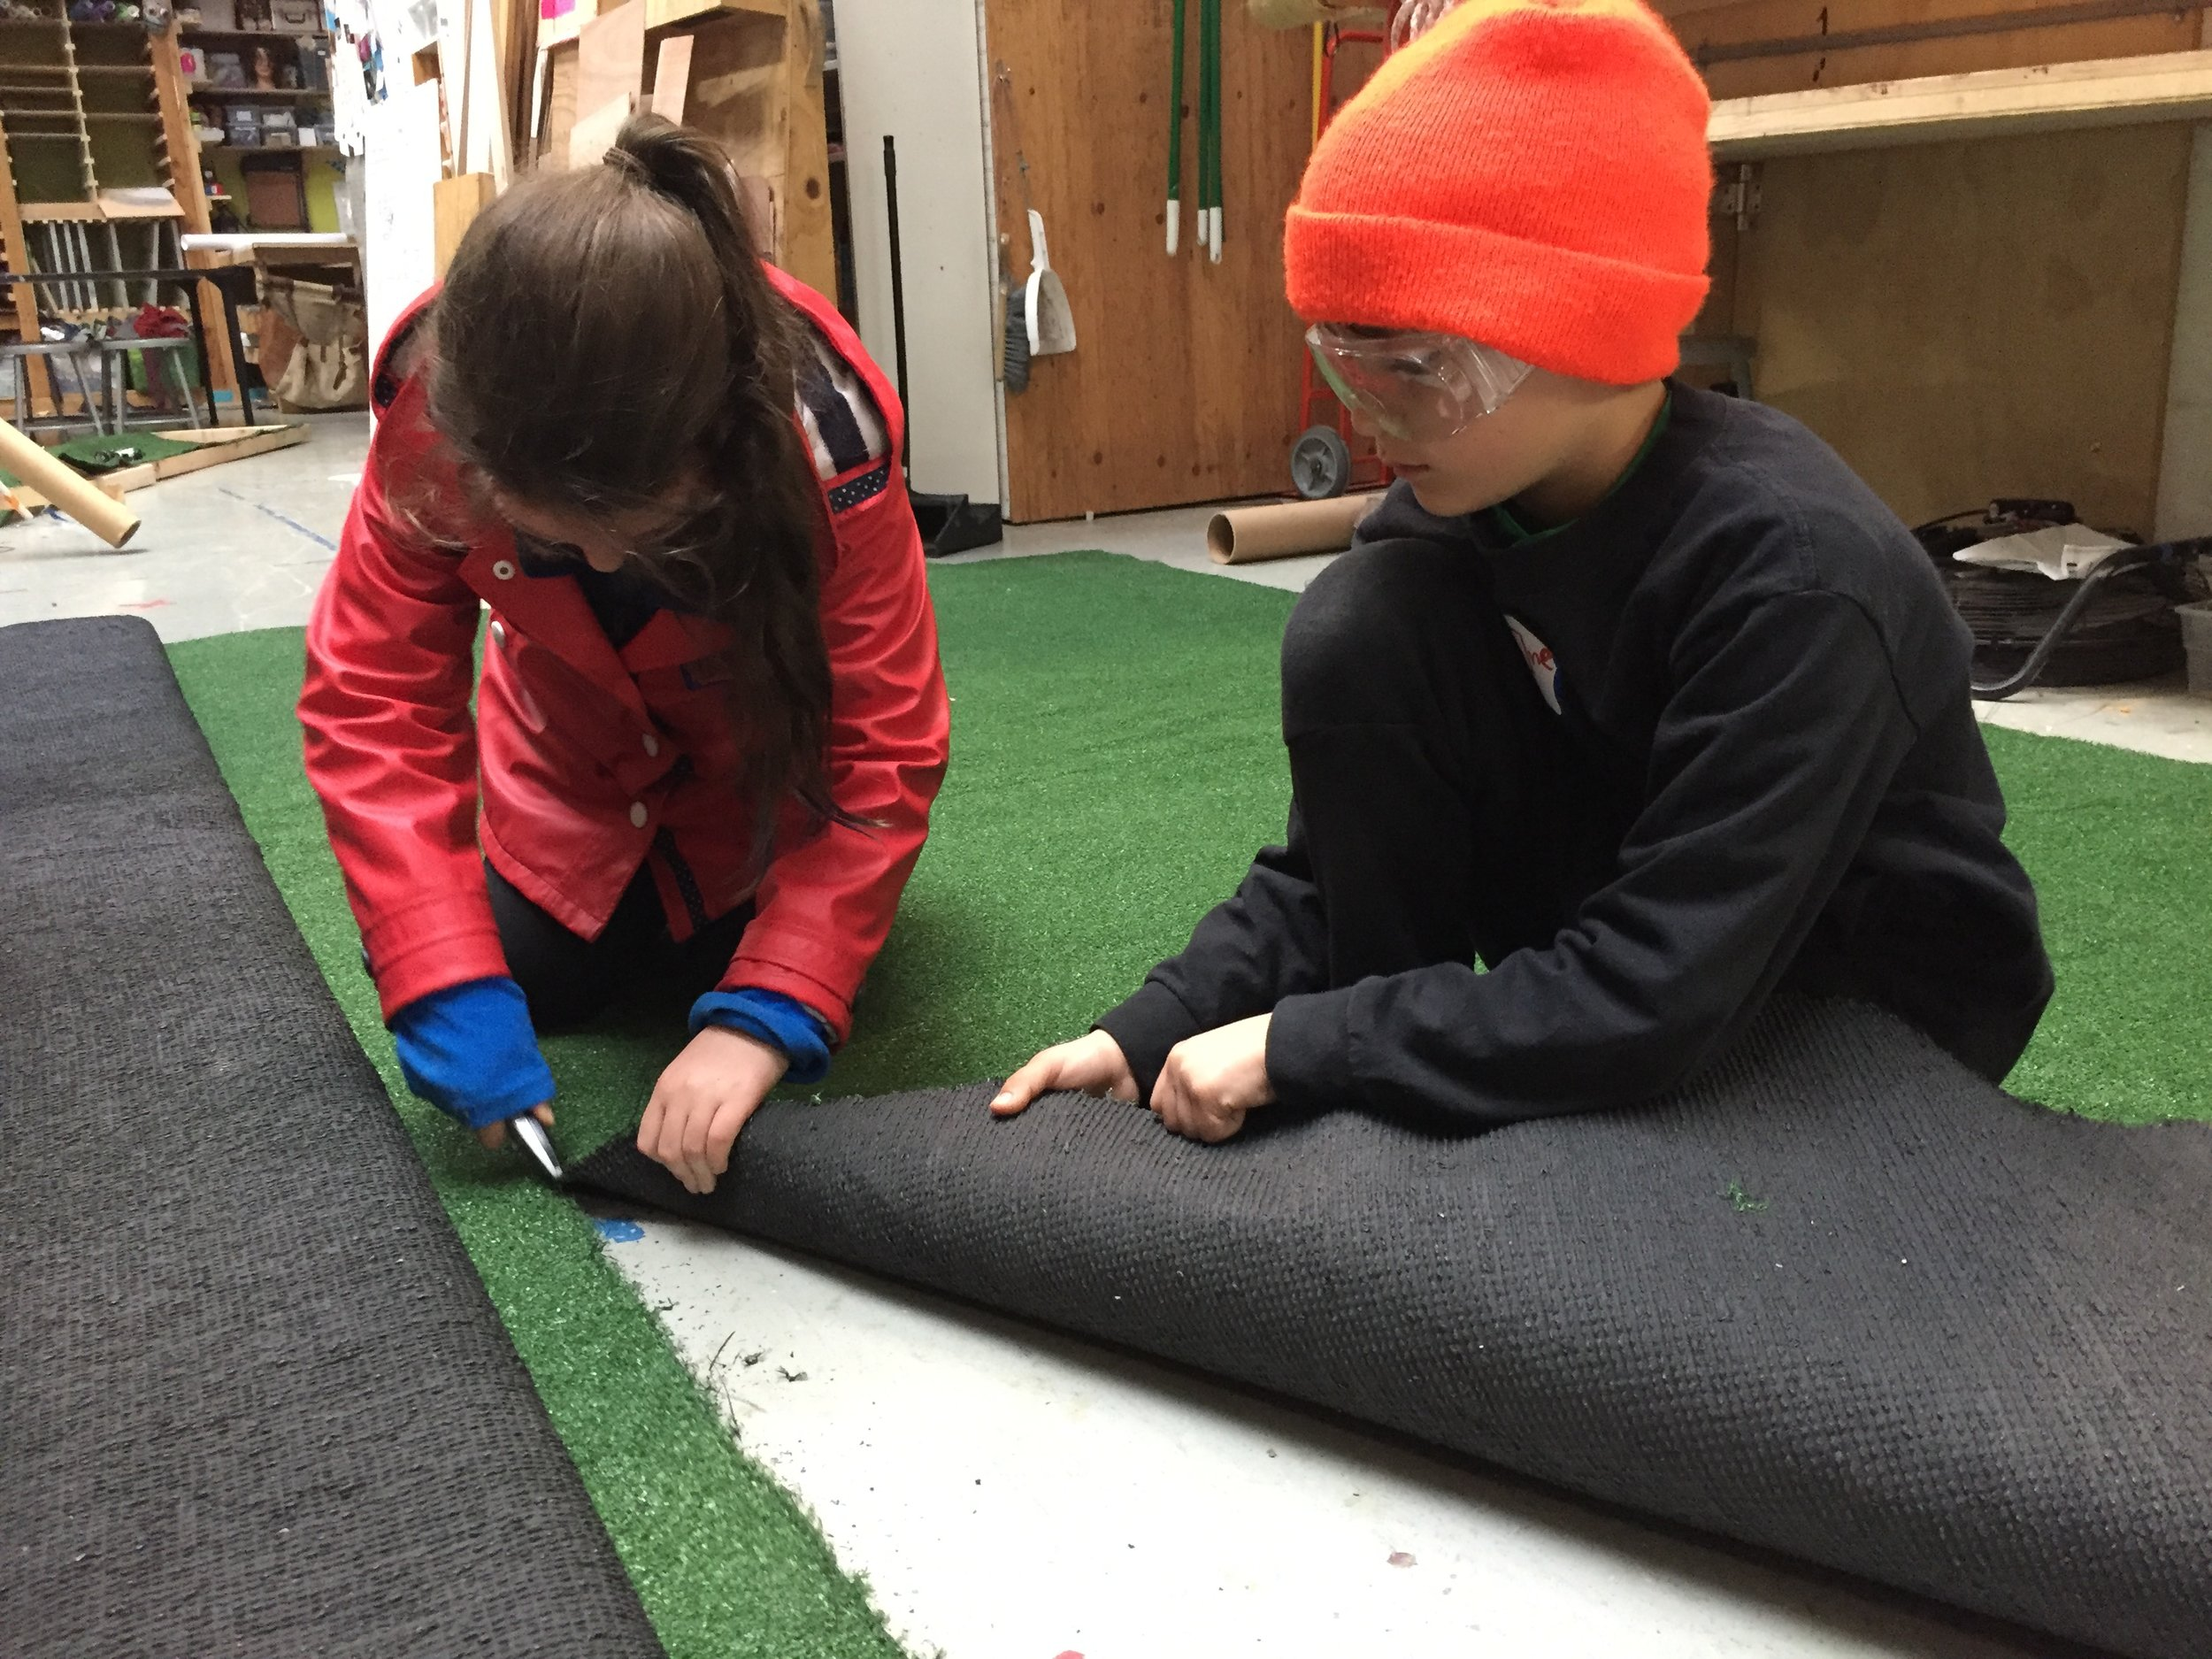 Keira and Zane cut sections of the putting green for the Mini Golf course.